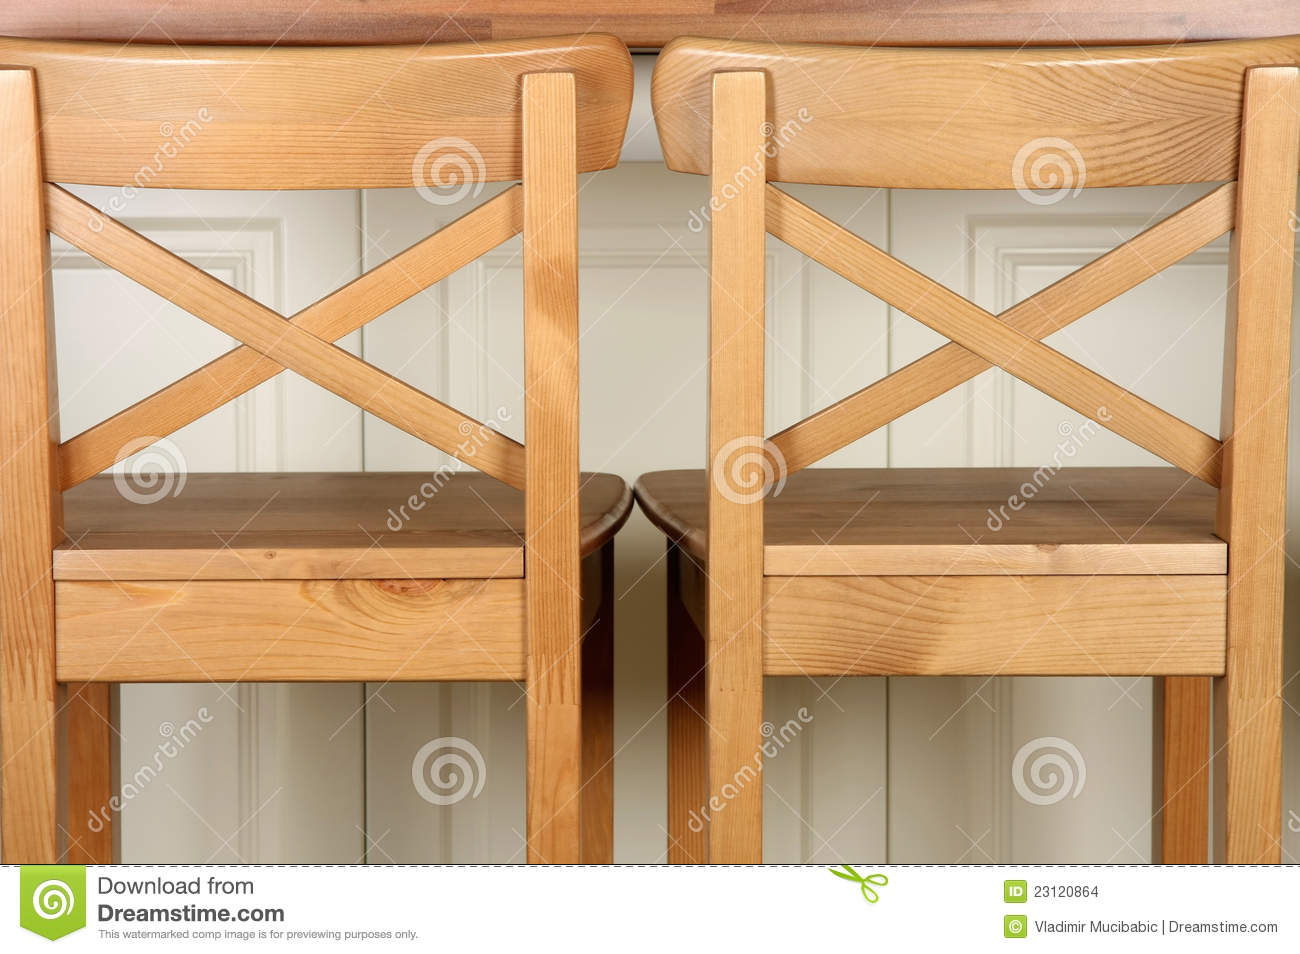 tabouret de bar et compteur de cuisine en bois photo stock image du beau architecture 23120864. Black Bedroom Furniture Sets. Home Design Ideas